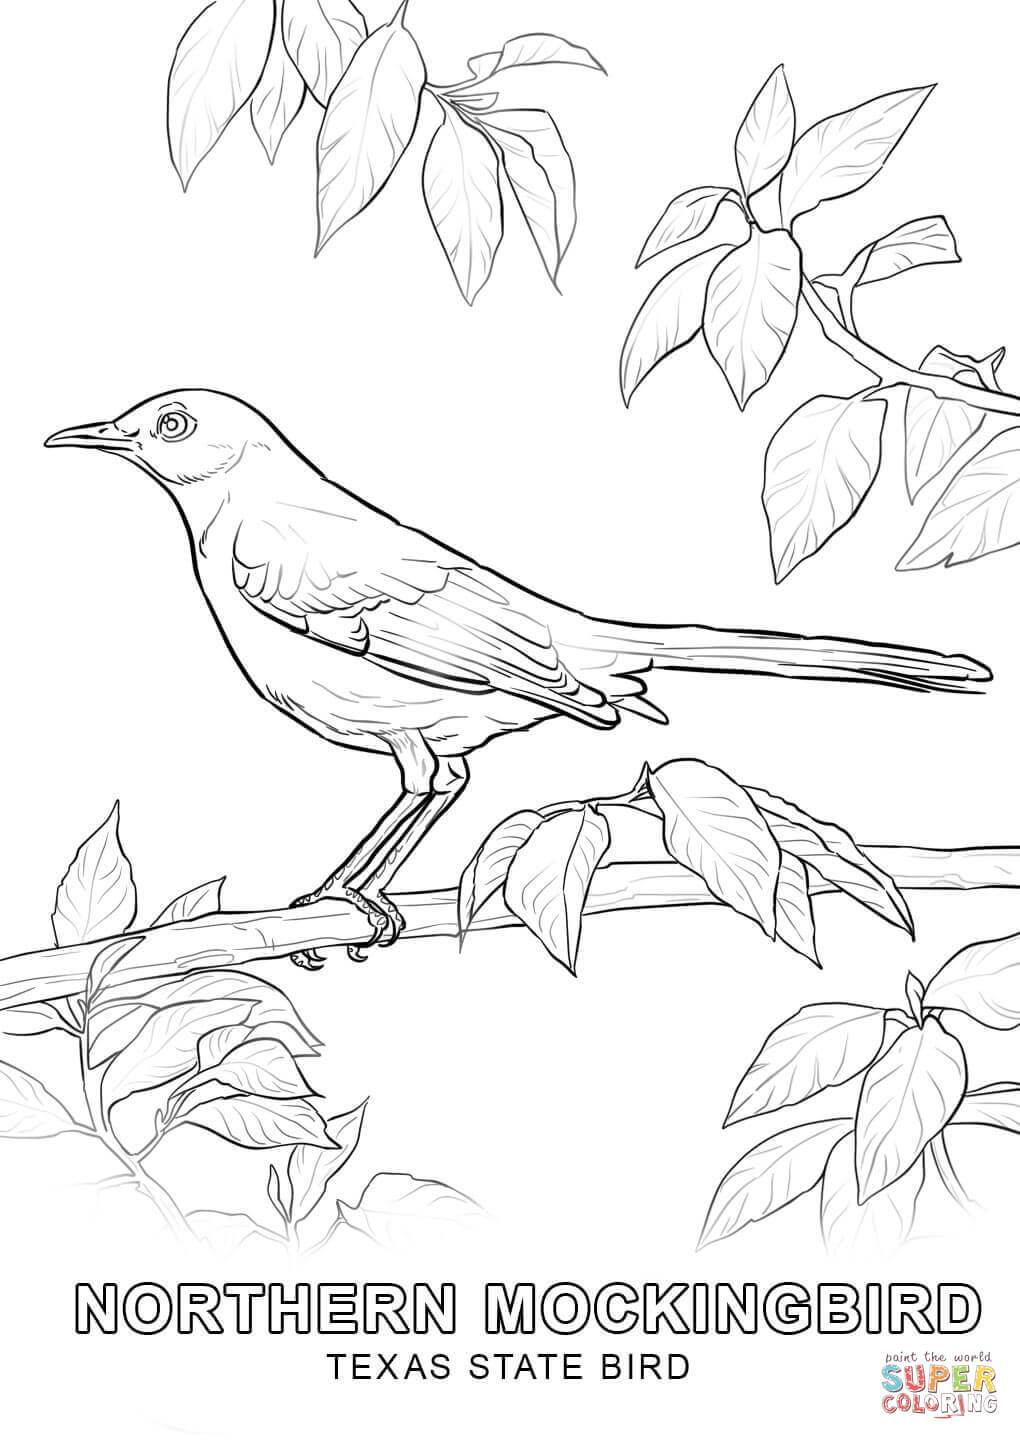 Texas State Bird coloring page